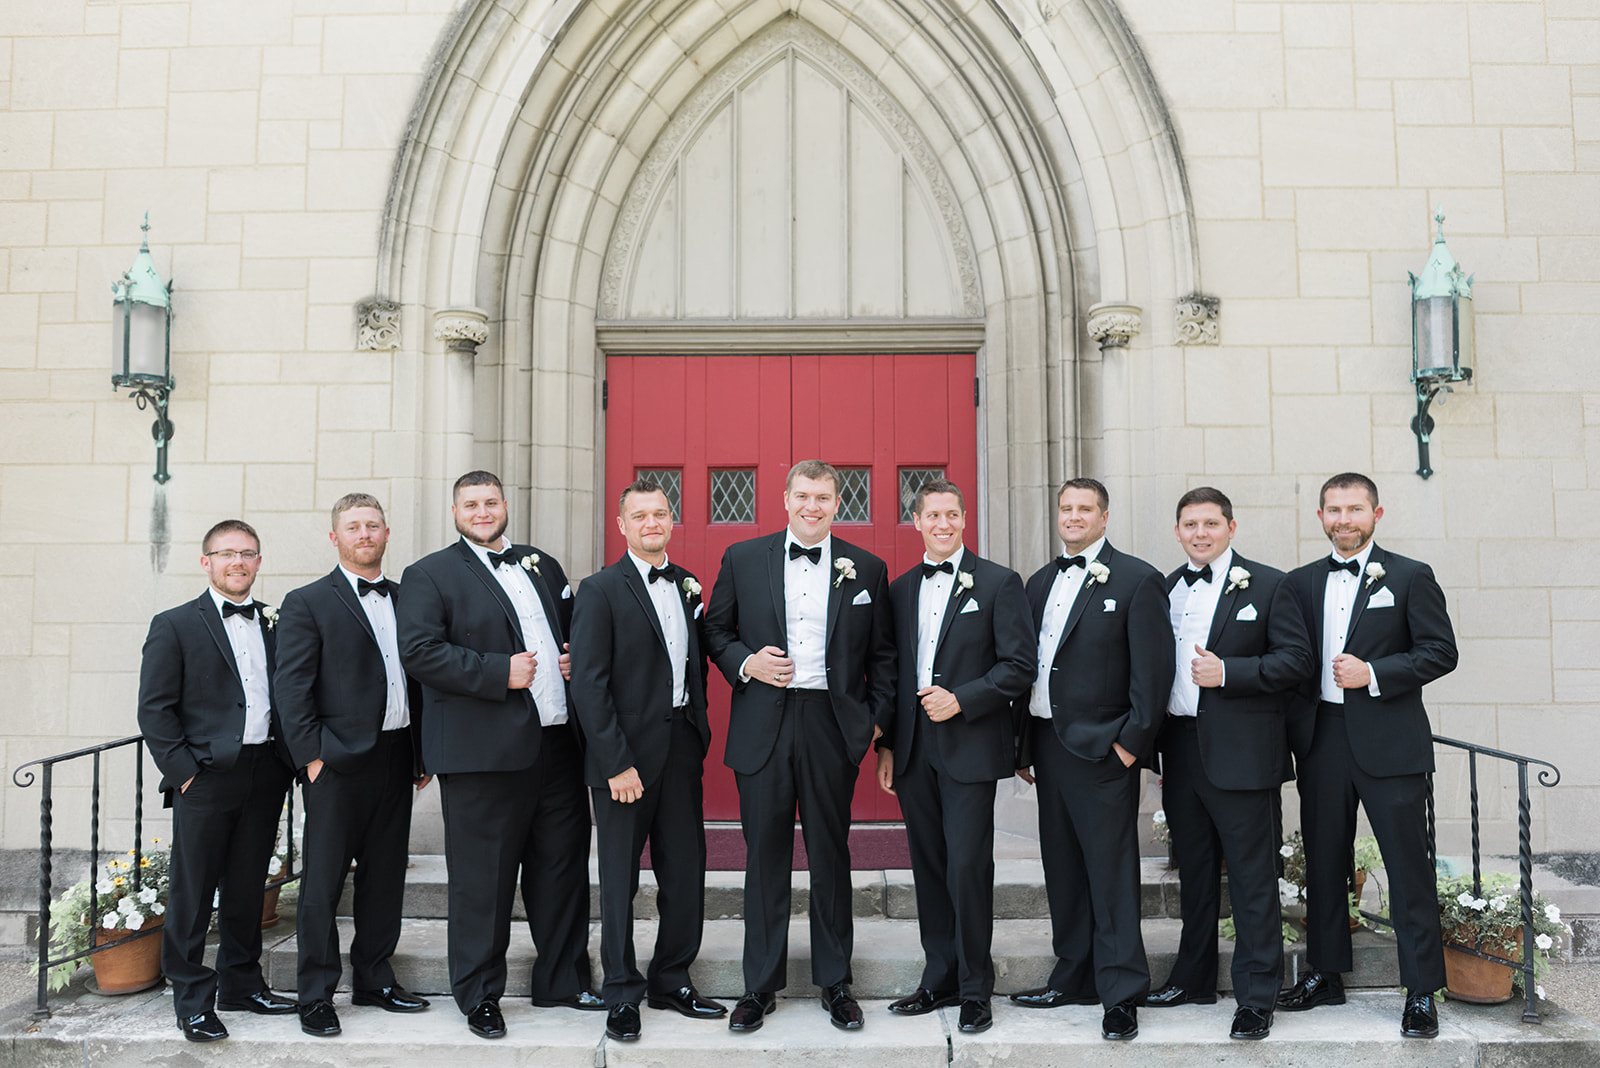 Groom and groomsmen pose for wedding photos in black tuxedos for Pittsburgh wedding at PNC Park planned by Exhale Events. Find more wedding inspiration at exhale-events.com!